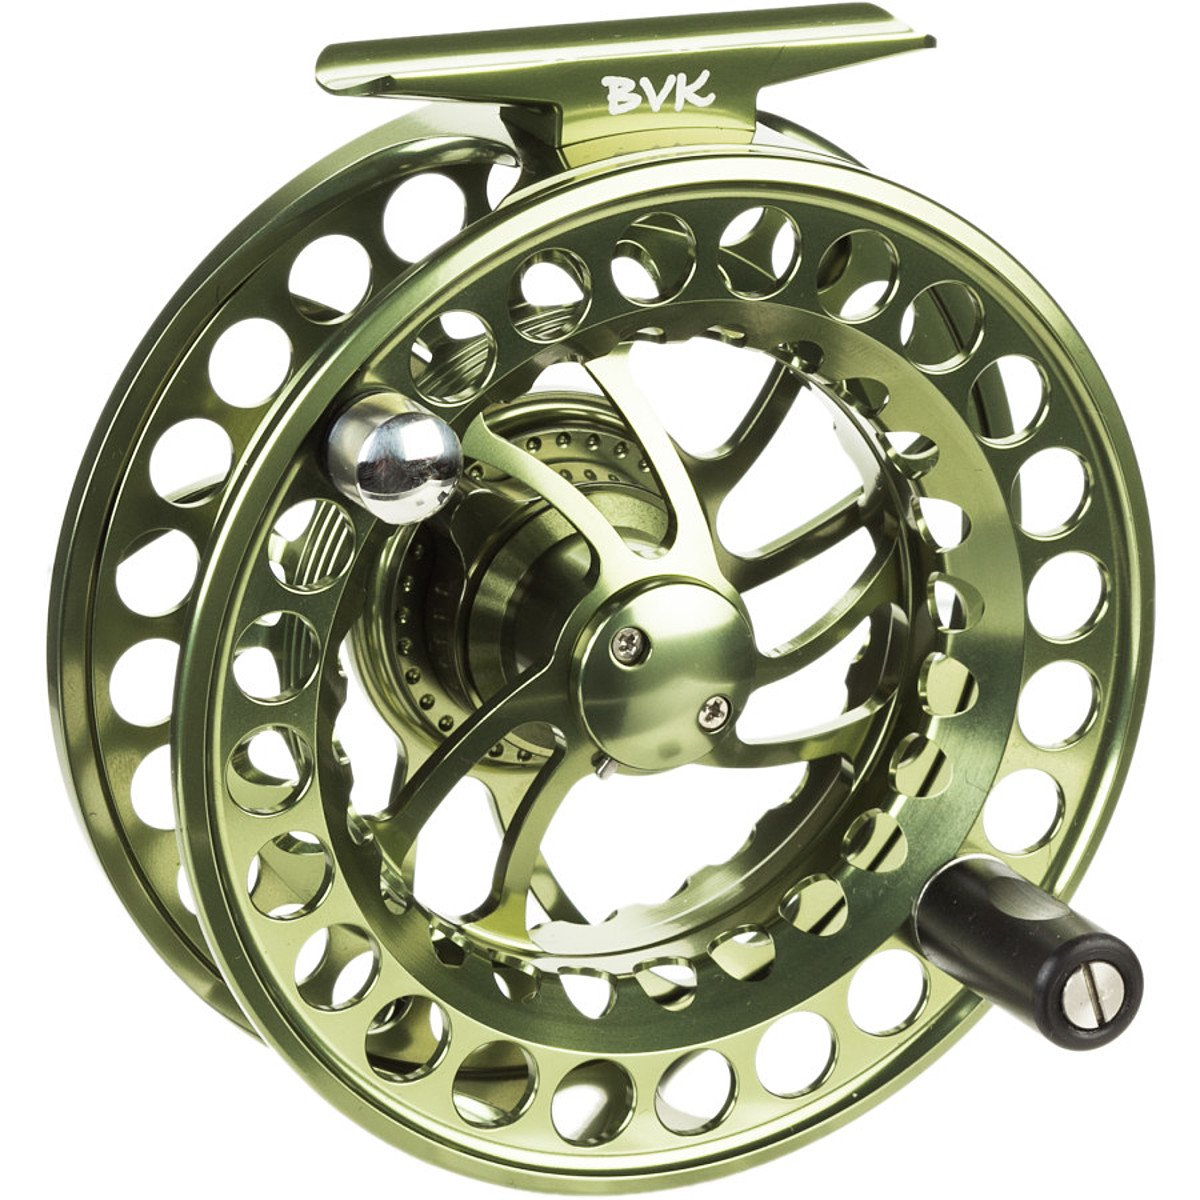 TFO BVK Series Super Large Arbor Fly Fishing Reels and Line Holder Spools